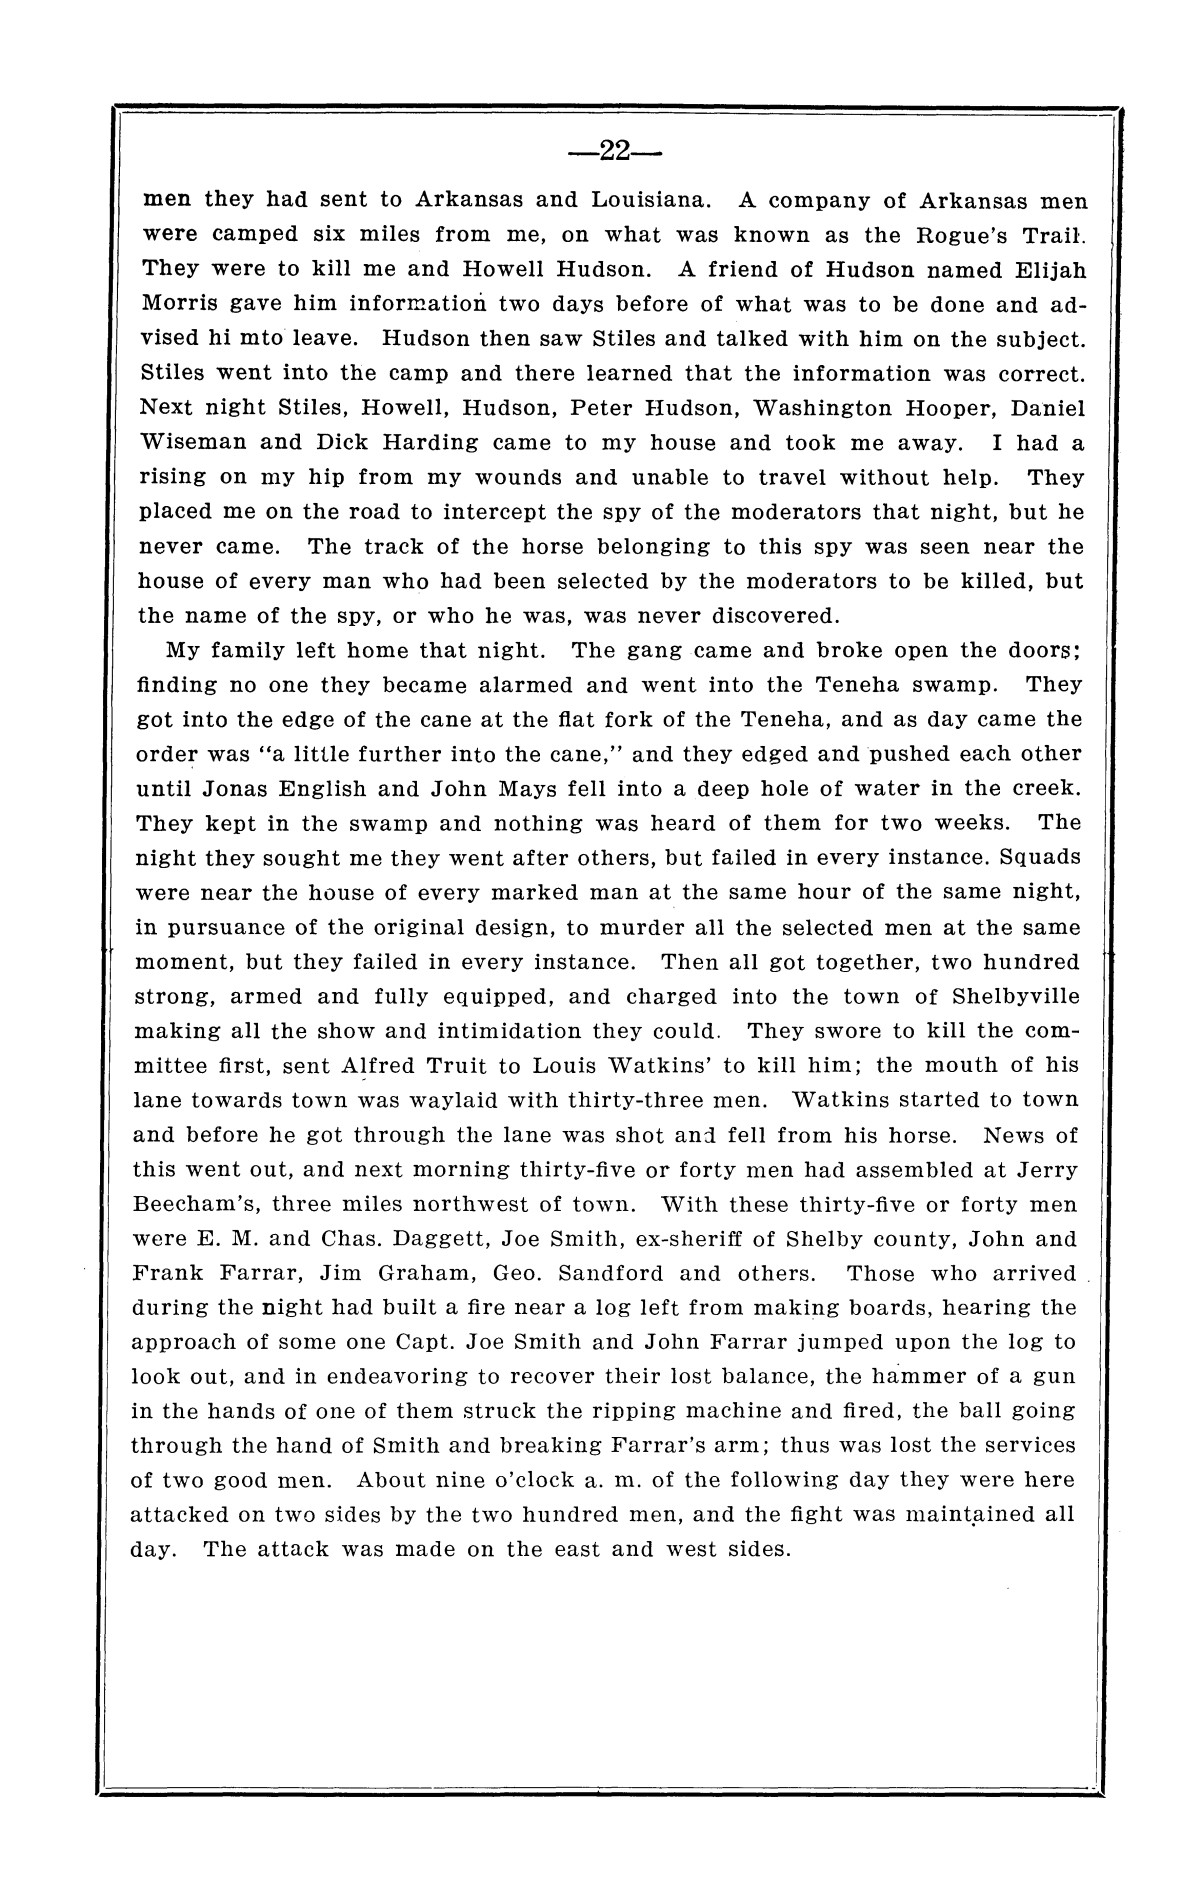 History of the regulators and moderators and the Shelby County war in 1841 and 1842, in the republic of Texas, with facts and incidents in the early history of the republic and state, from 1837 to the annexation, together with incidents of frontier life and Indian troubles, and the war on the reserve in Young County in 1857                                                                                                      [Sequence #]: 24 of 42